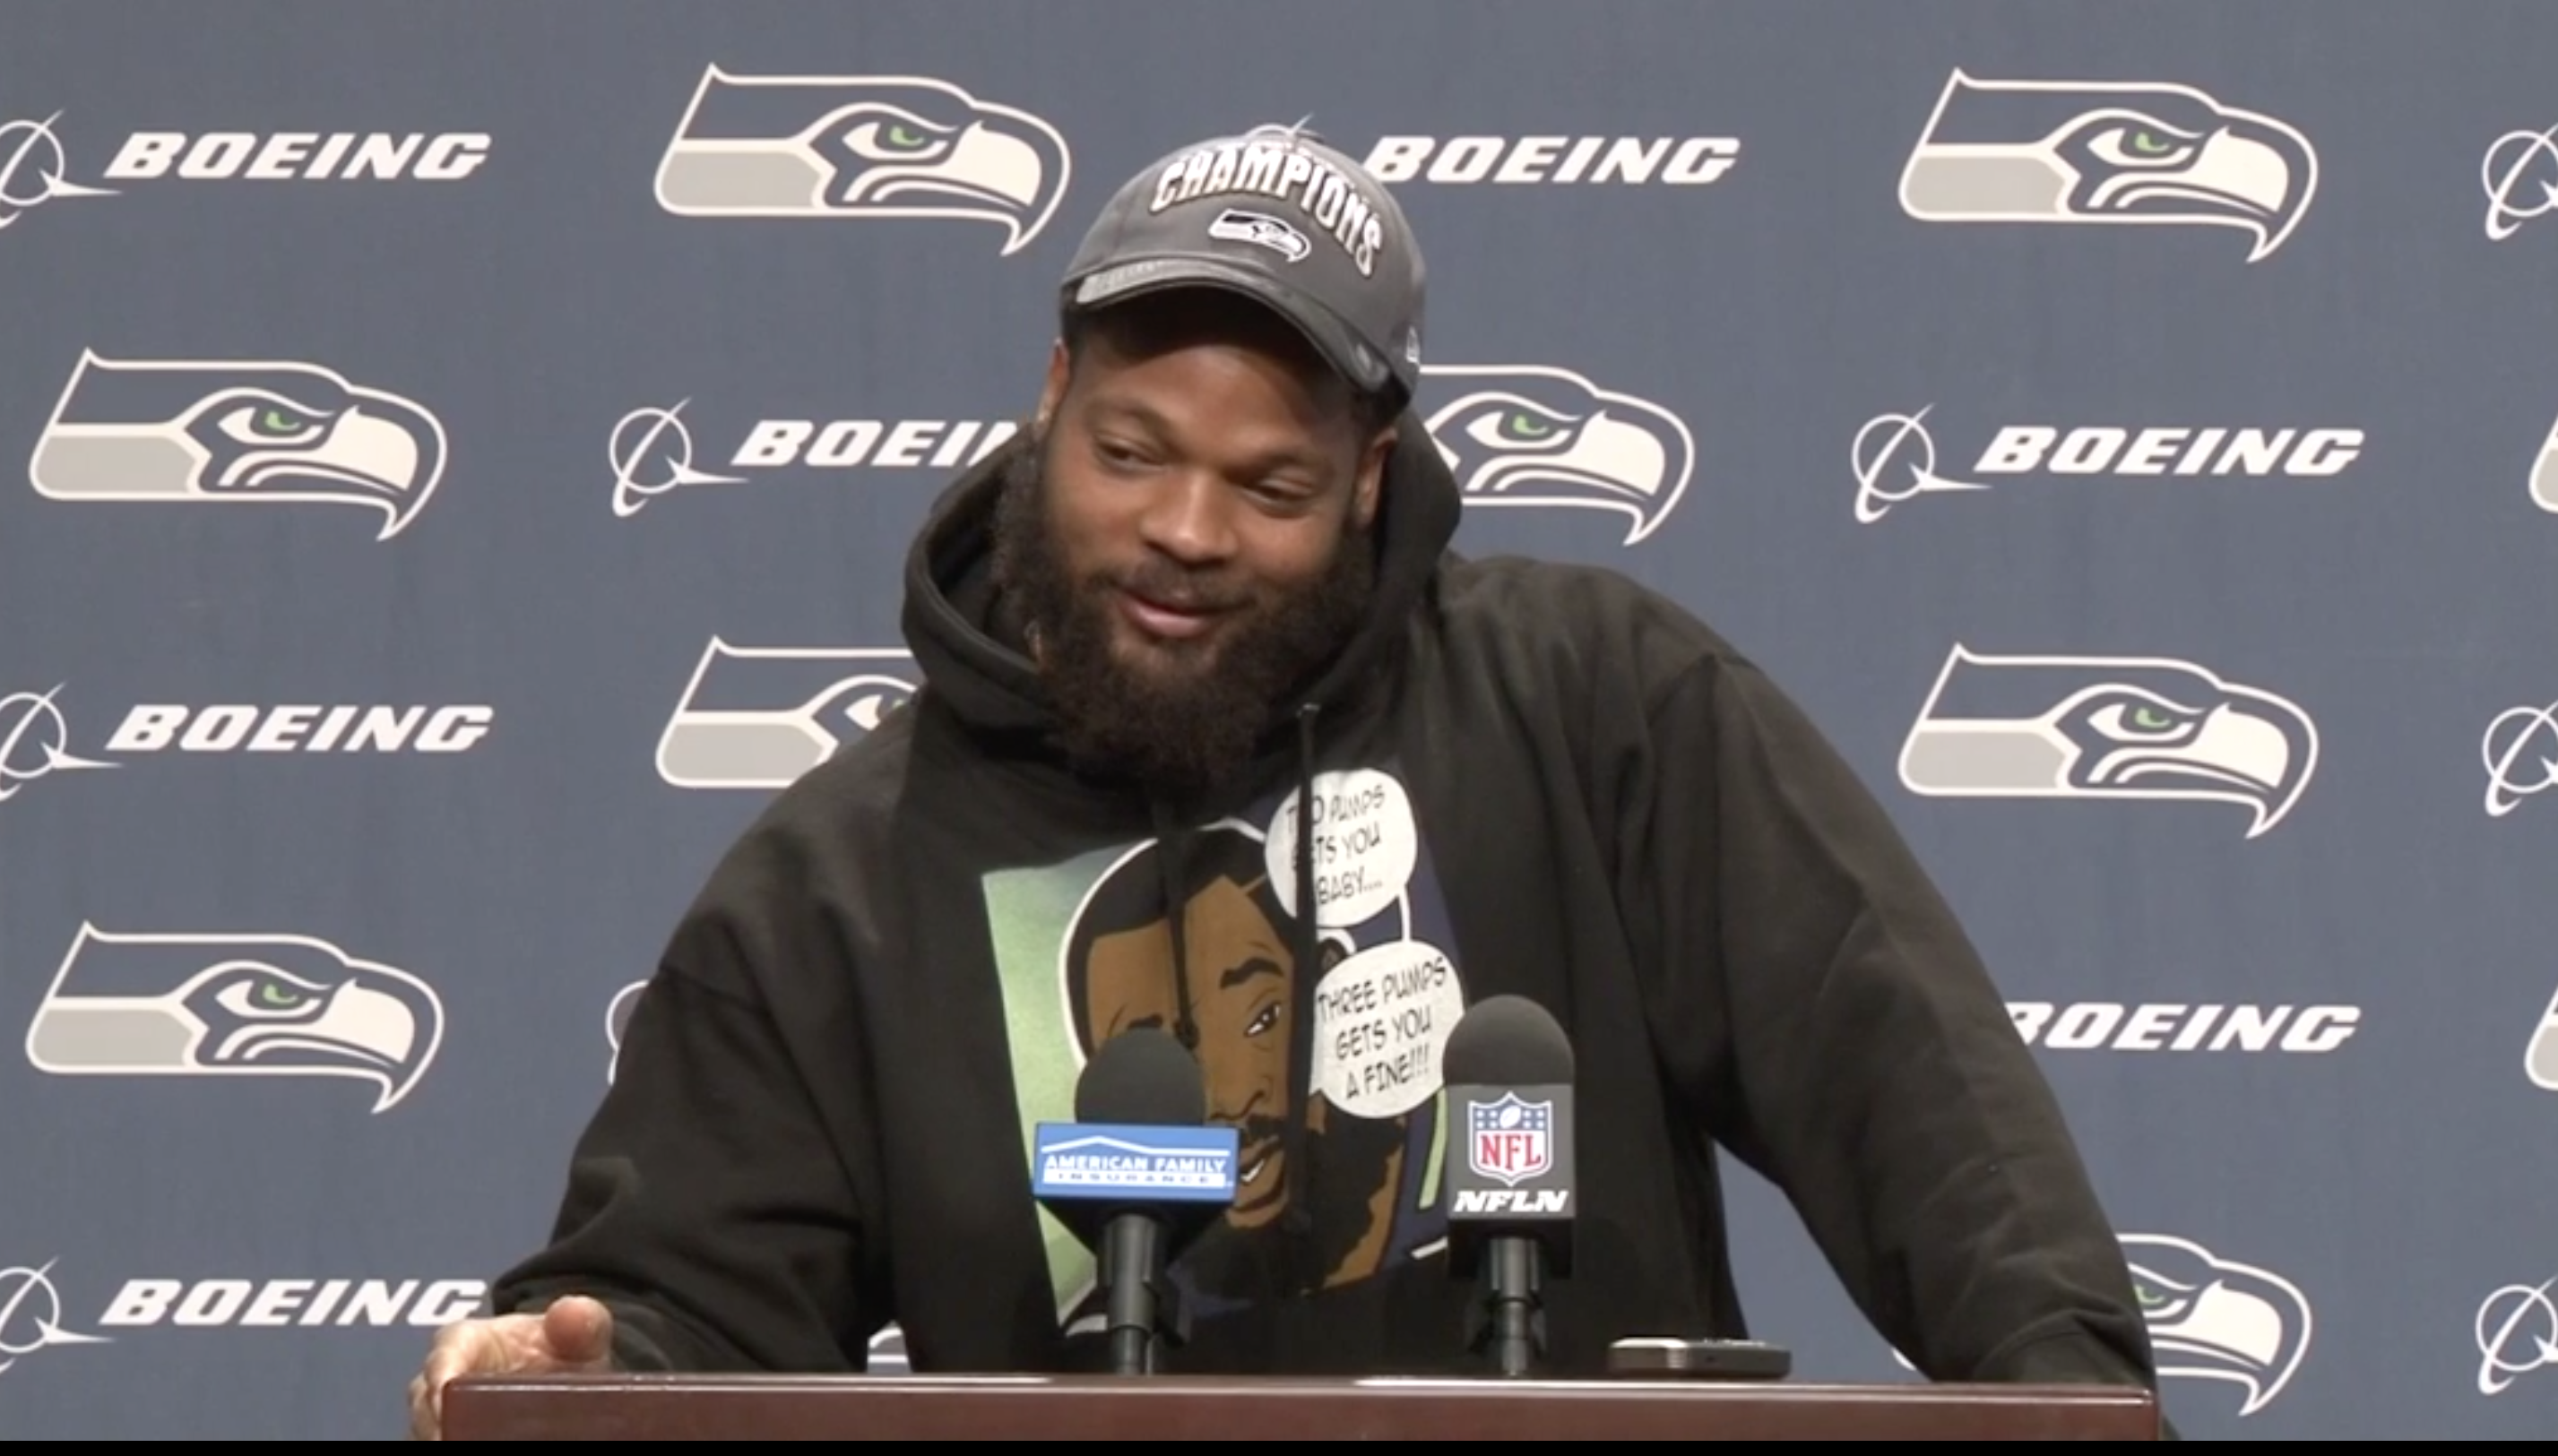 Michael Bennett is now wearing a 2 pumps you a baby 3 pumps